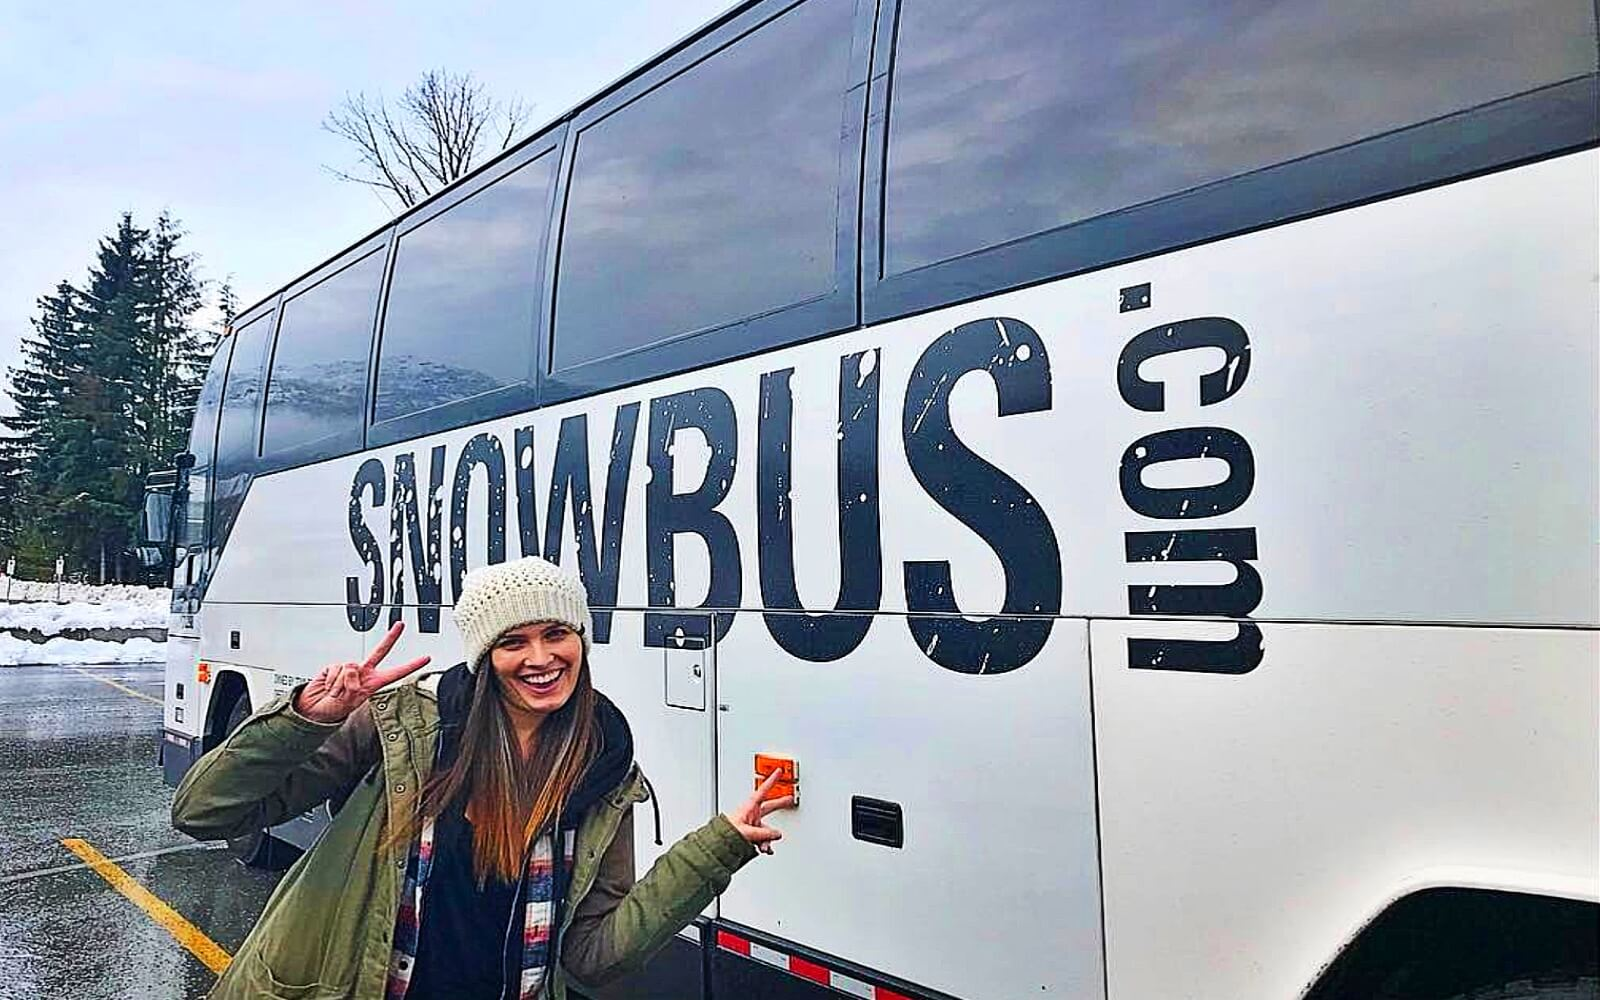 A girl stands in front of the Snowbus shuttle to Whistler